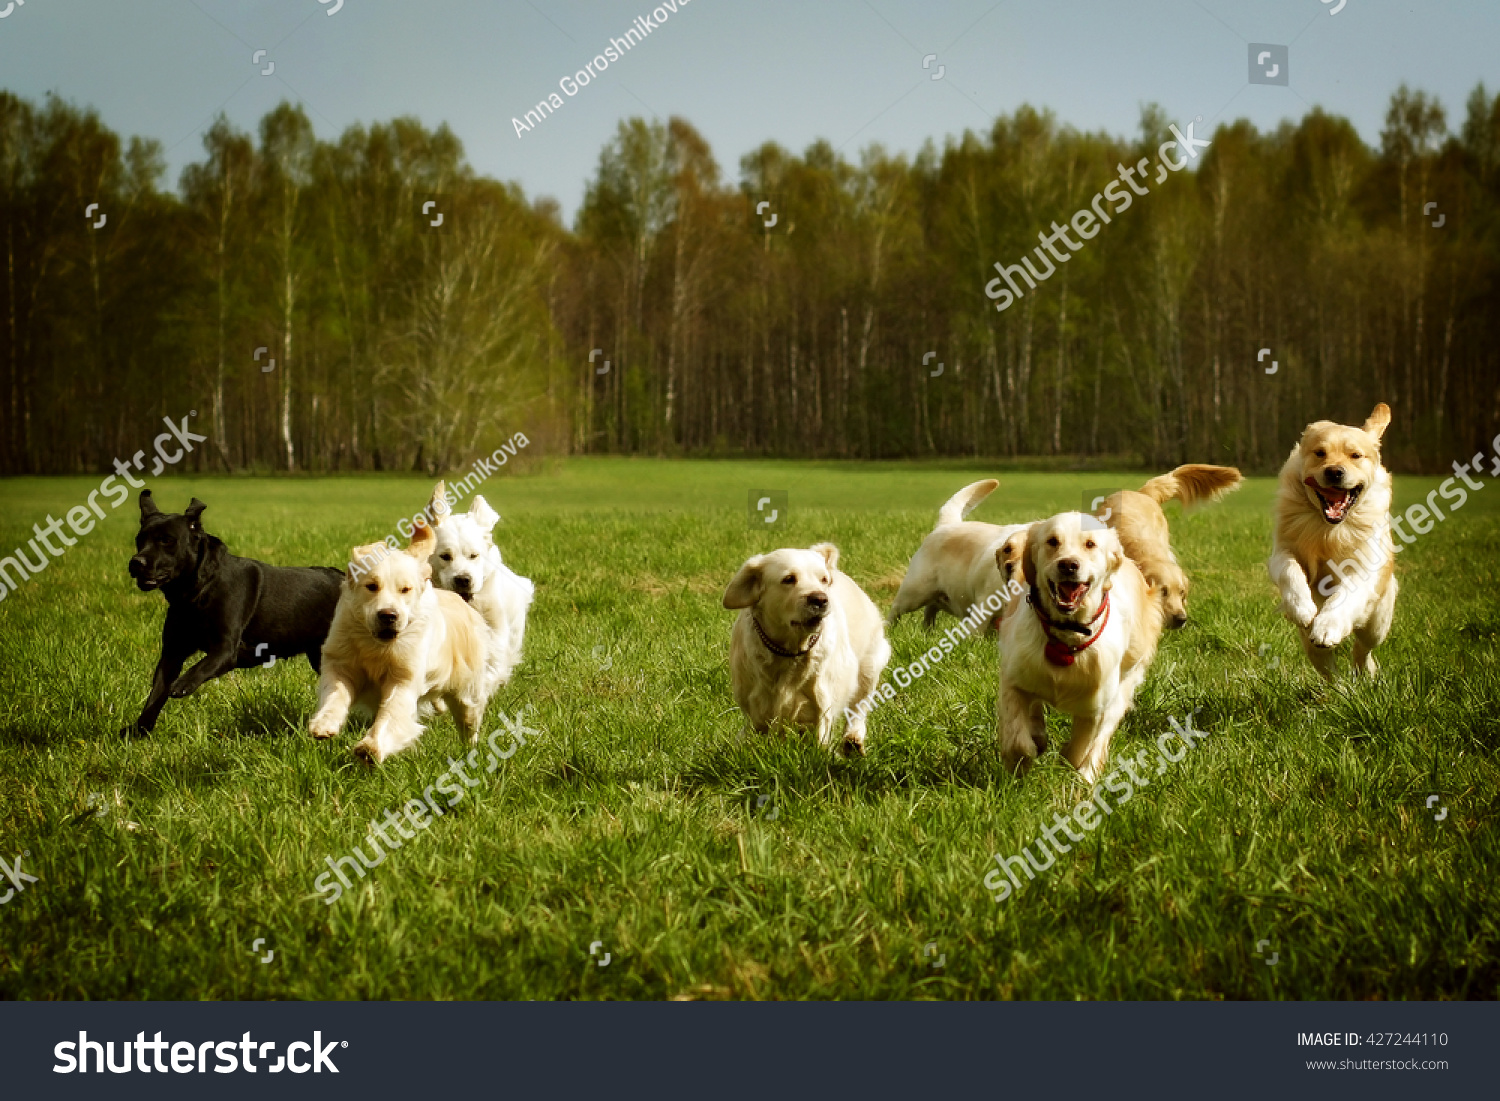 Group of dogs running